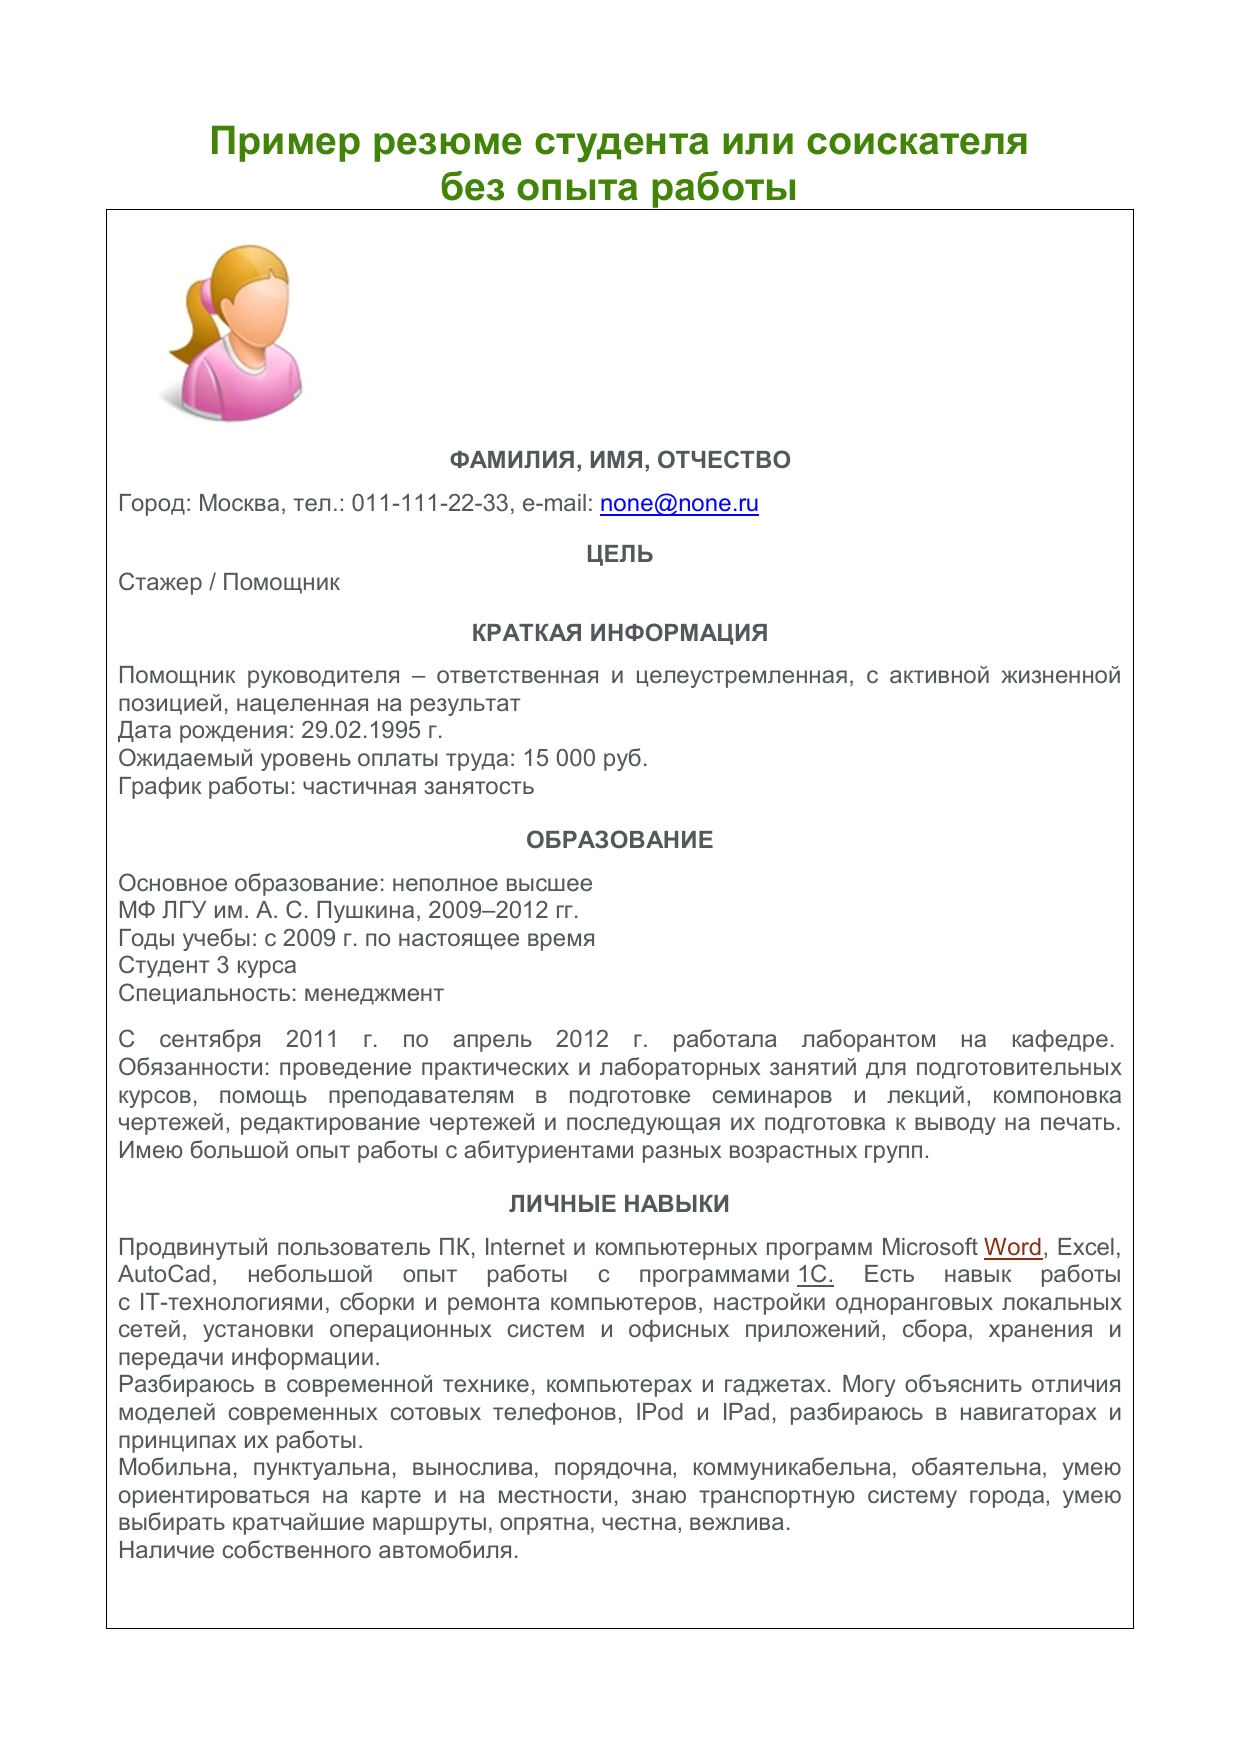 http://s2.docme.ru/store/data/000348879_1-d0fa0b5b0c842da7bee463f33a76df1e.png